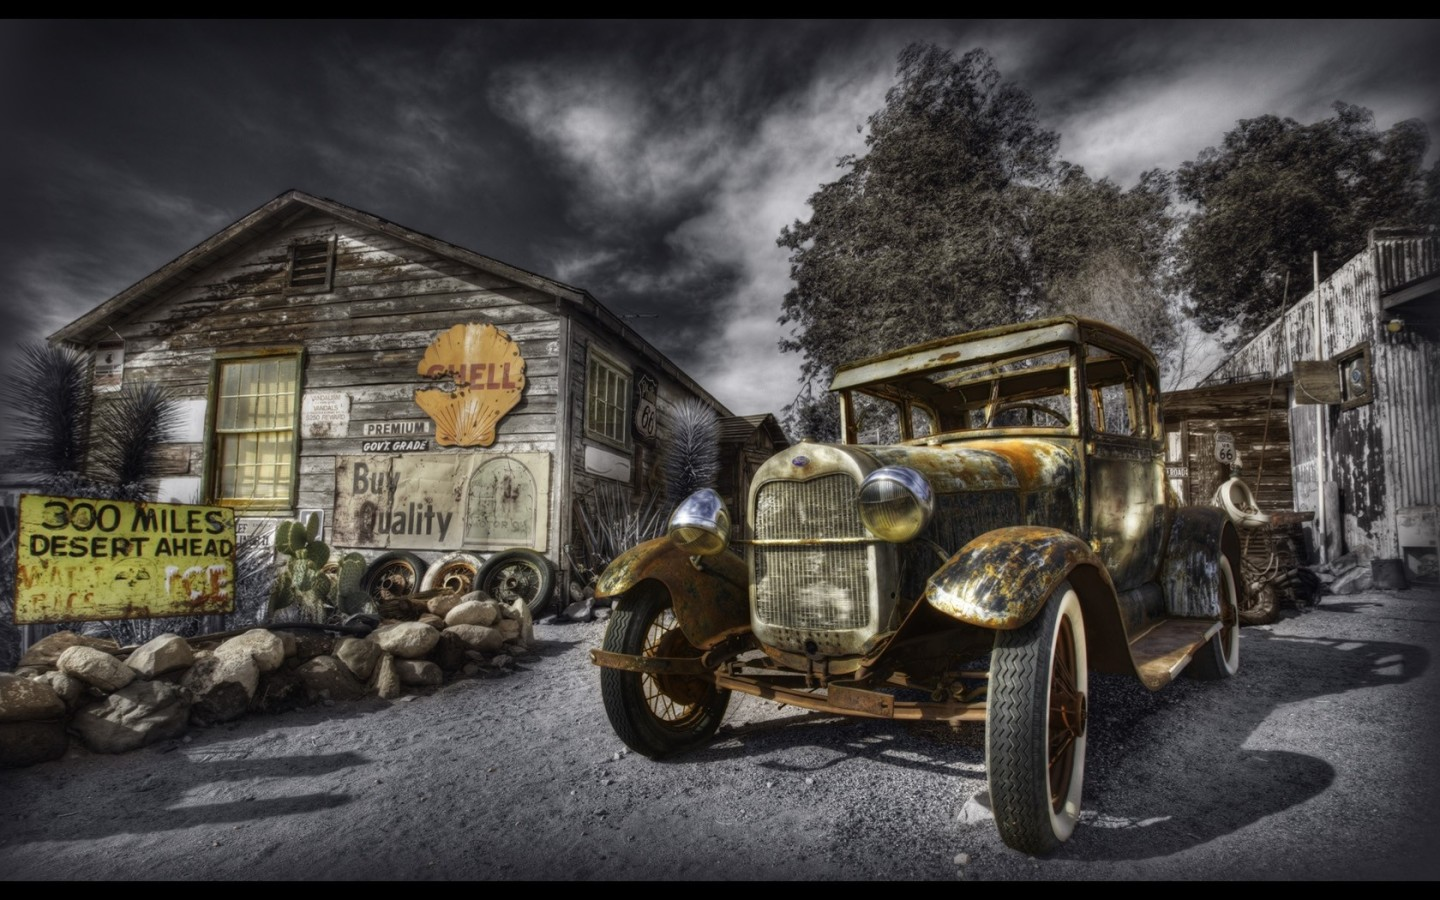 VINTAGE CARS 3D   CNET DOWNLOADCOM   PRODUCT REVIEWS AND PRICES 1440x900